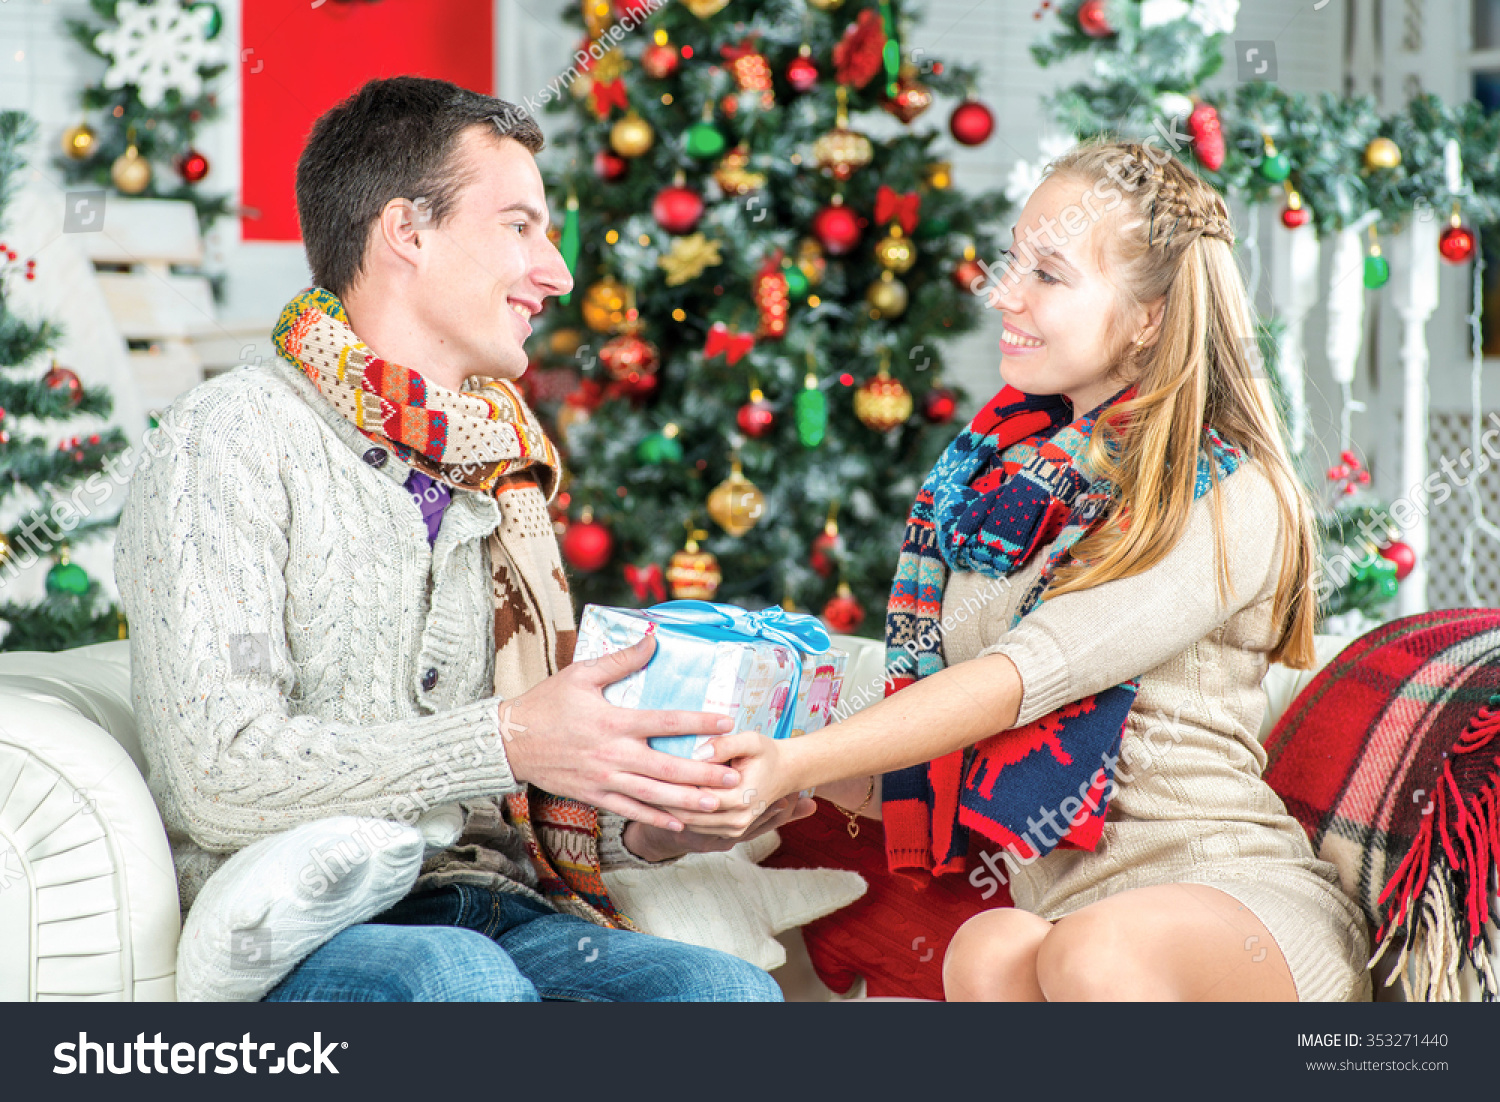 Family Christmas Gift Young Beautiful Man Stock Photo (Edit Now ...